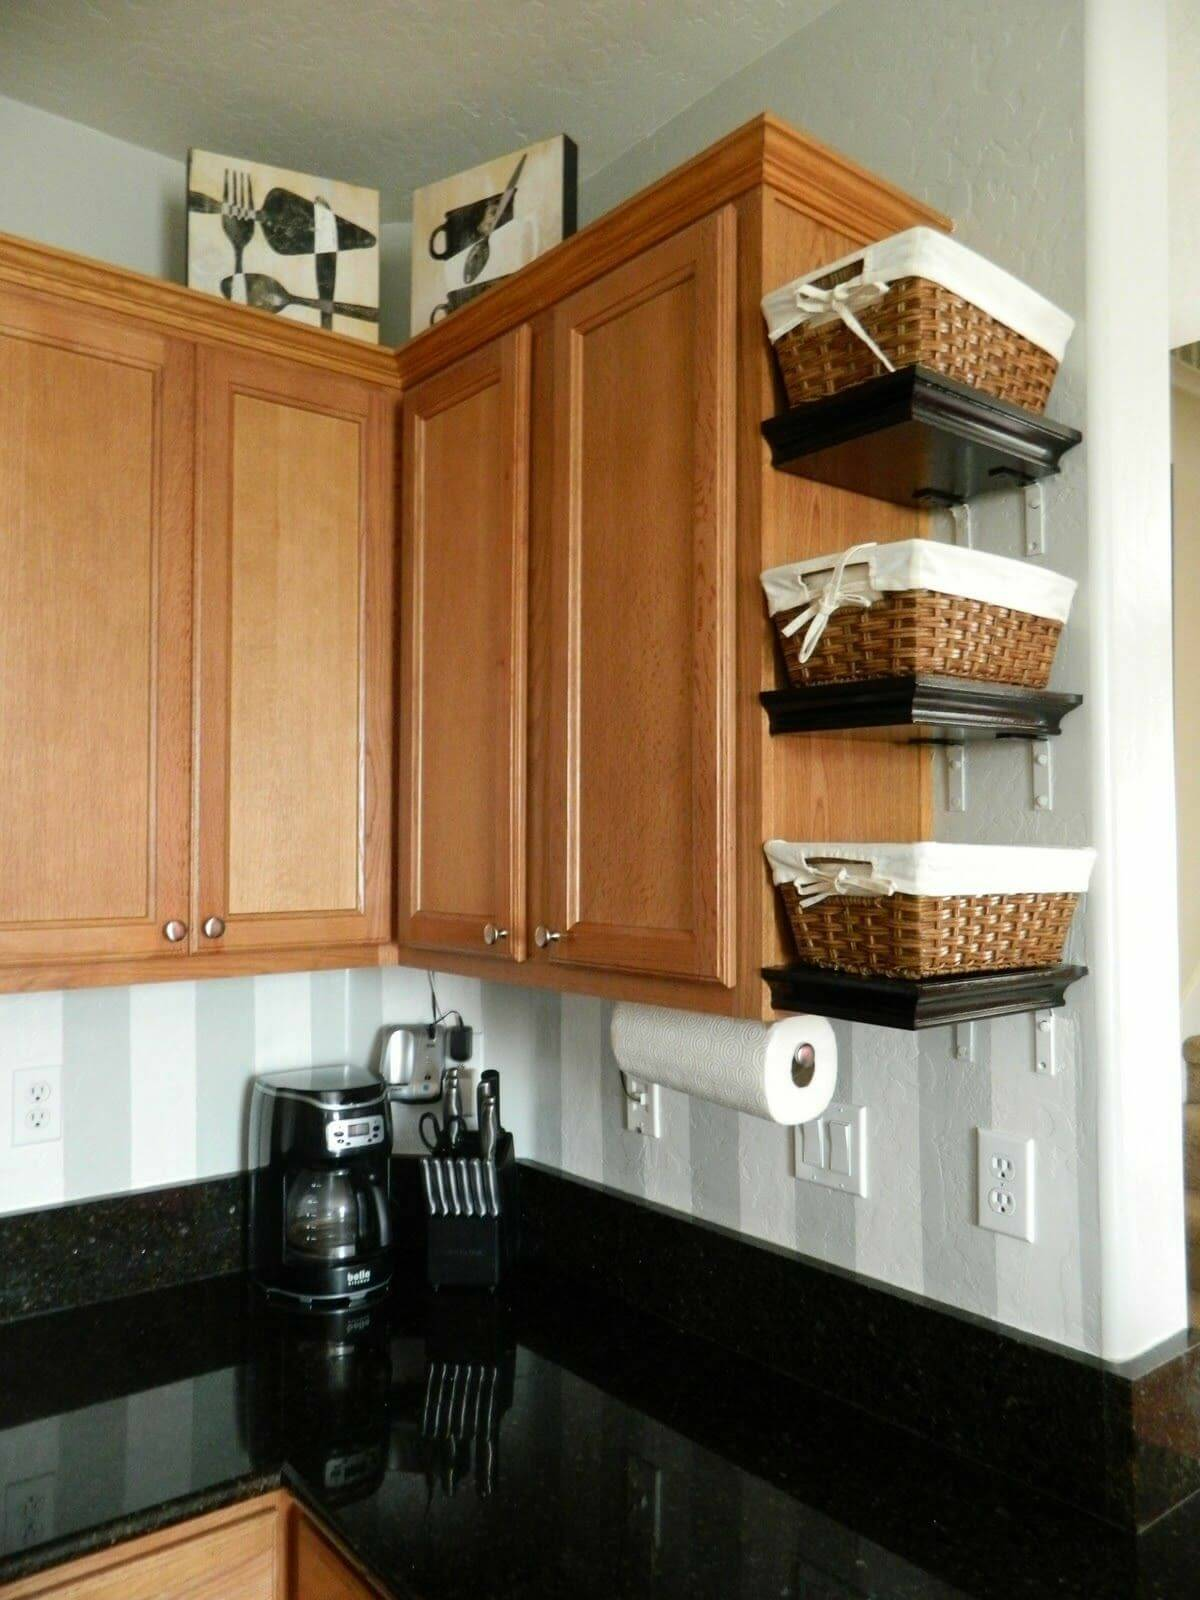 kitchen countertop shelf new appliances 23 best clutter free ideas and designs